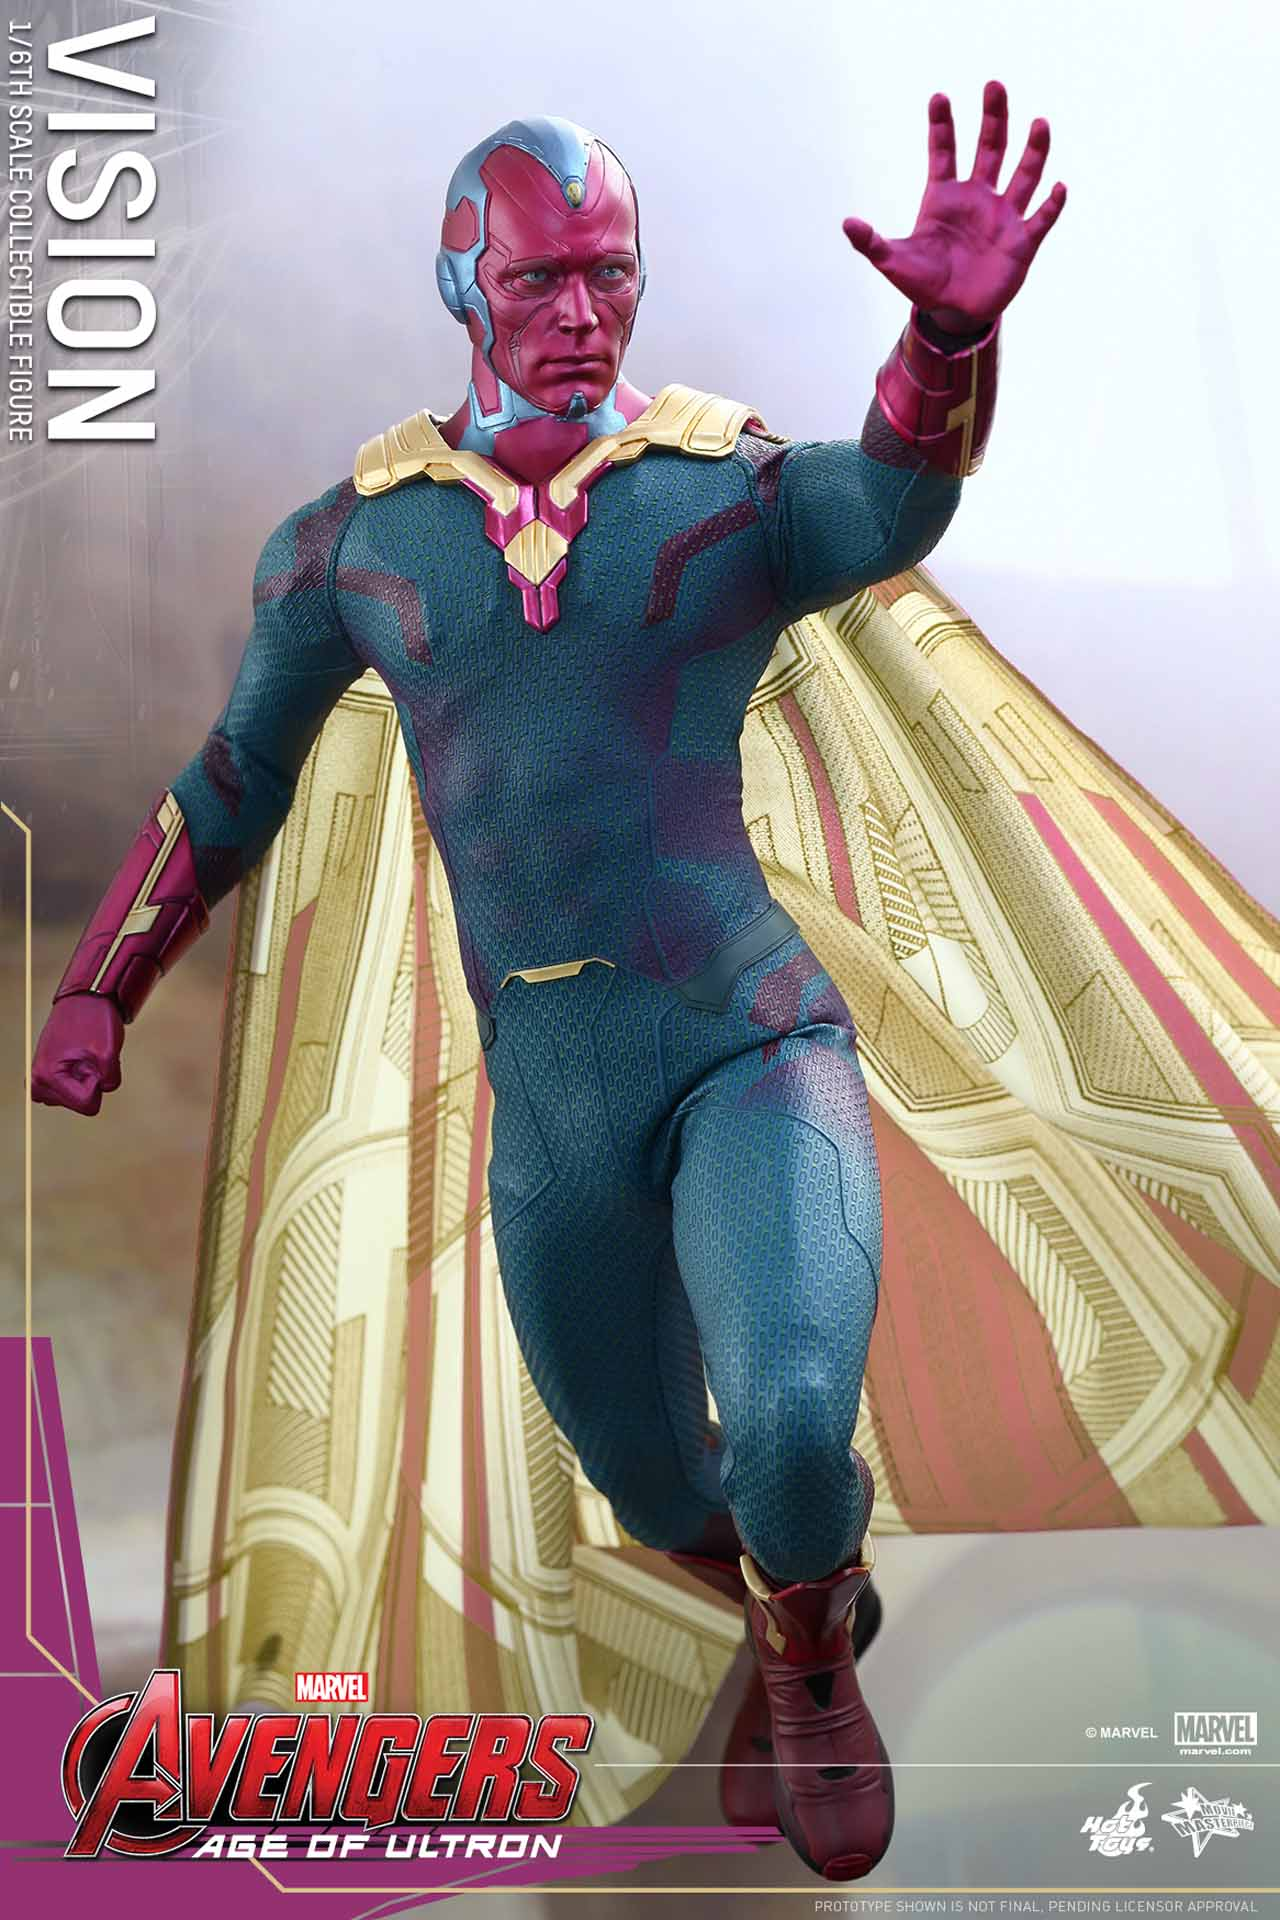 1/6th Scale Hot Toys Vision Collectible Figure